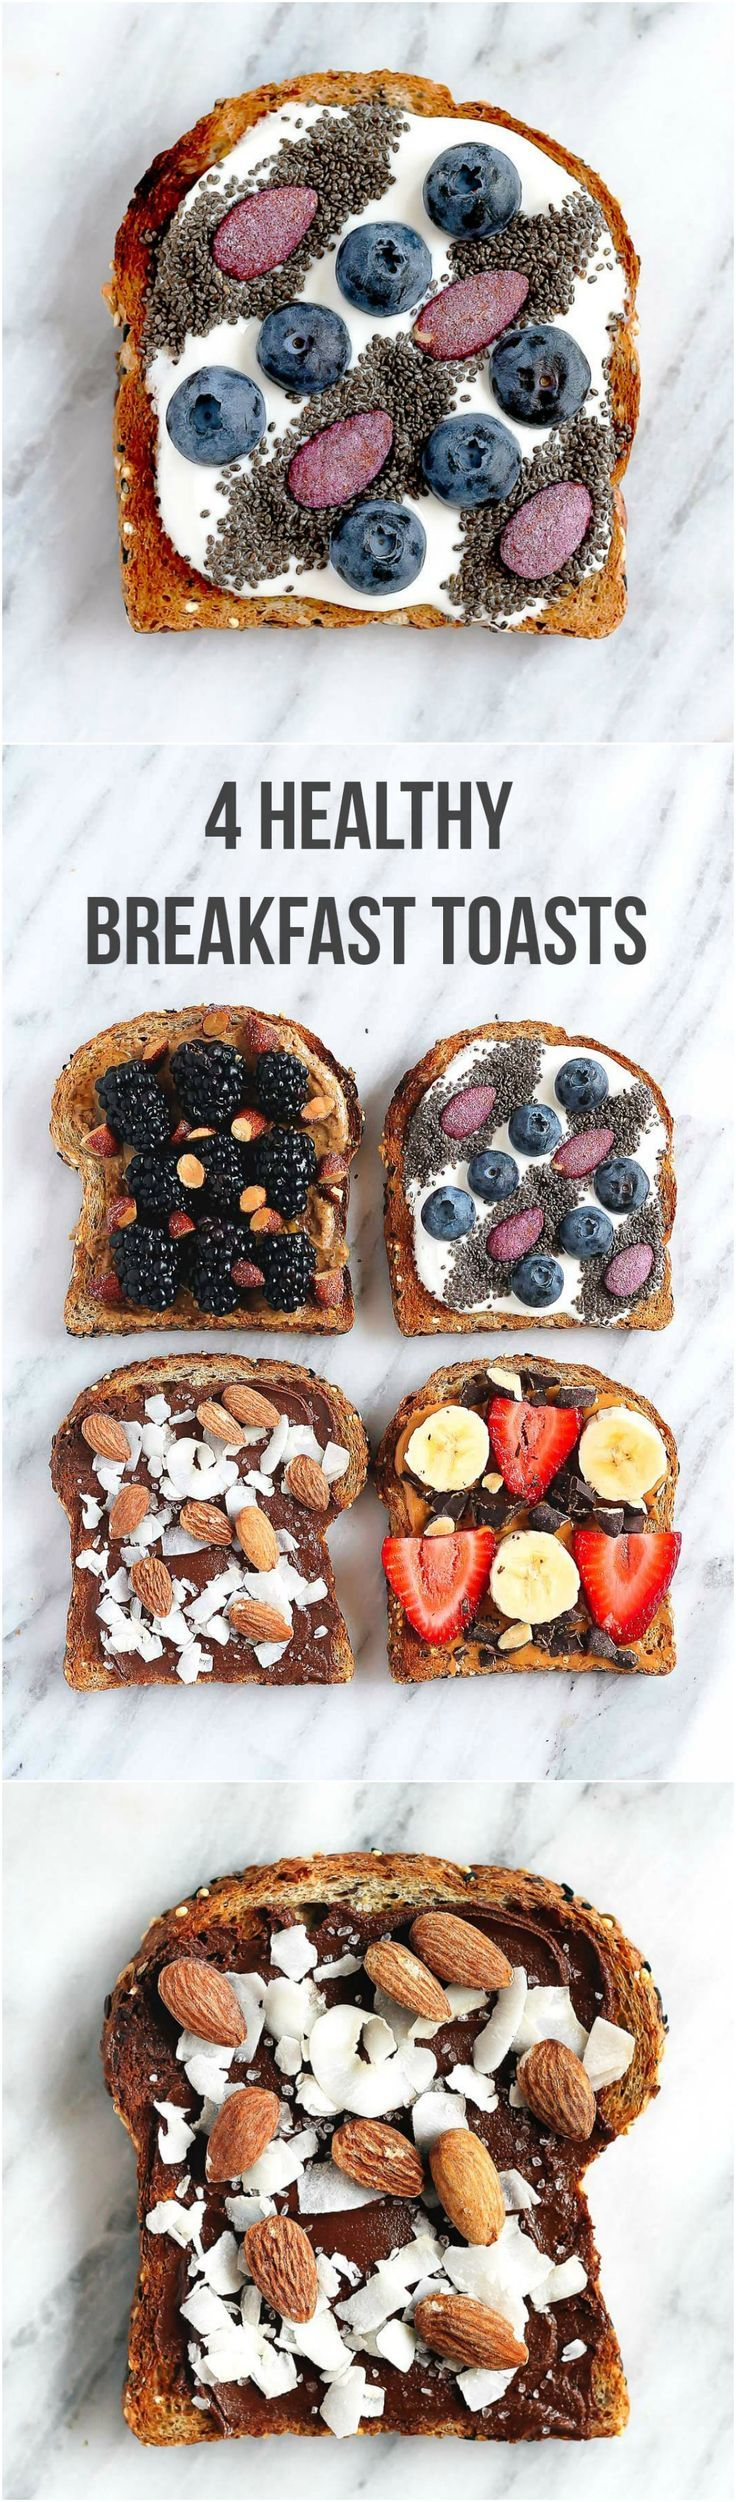 Four healthy breakfast toasts to get your workday off to a healthy start.